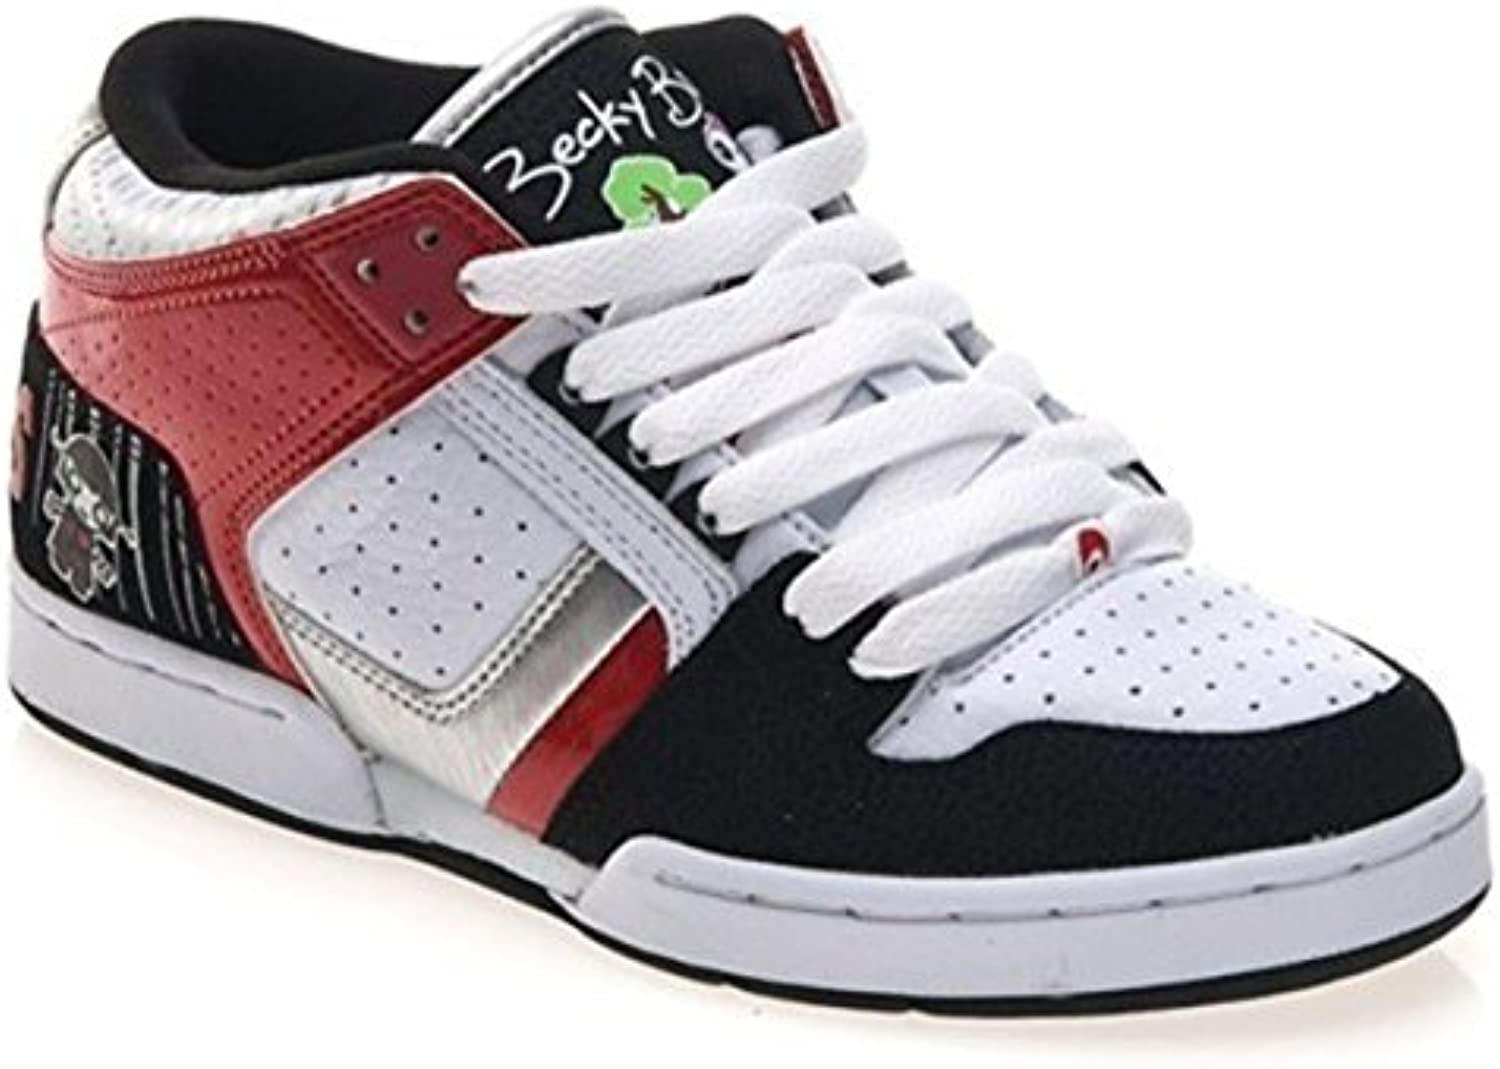 Osiris Skateboard Schuhe South Bronx Lucylie/Soaked/White/Black/Red   Hip Hop Schuhe